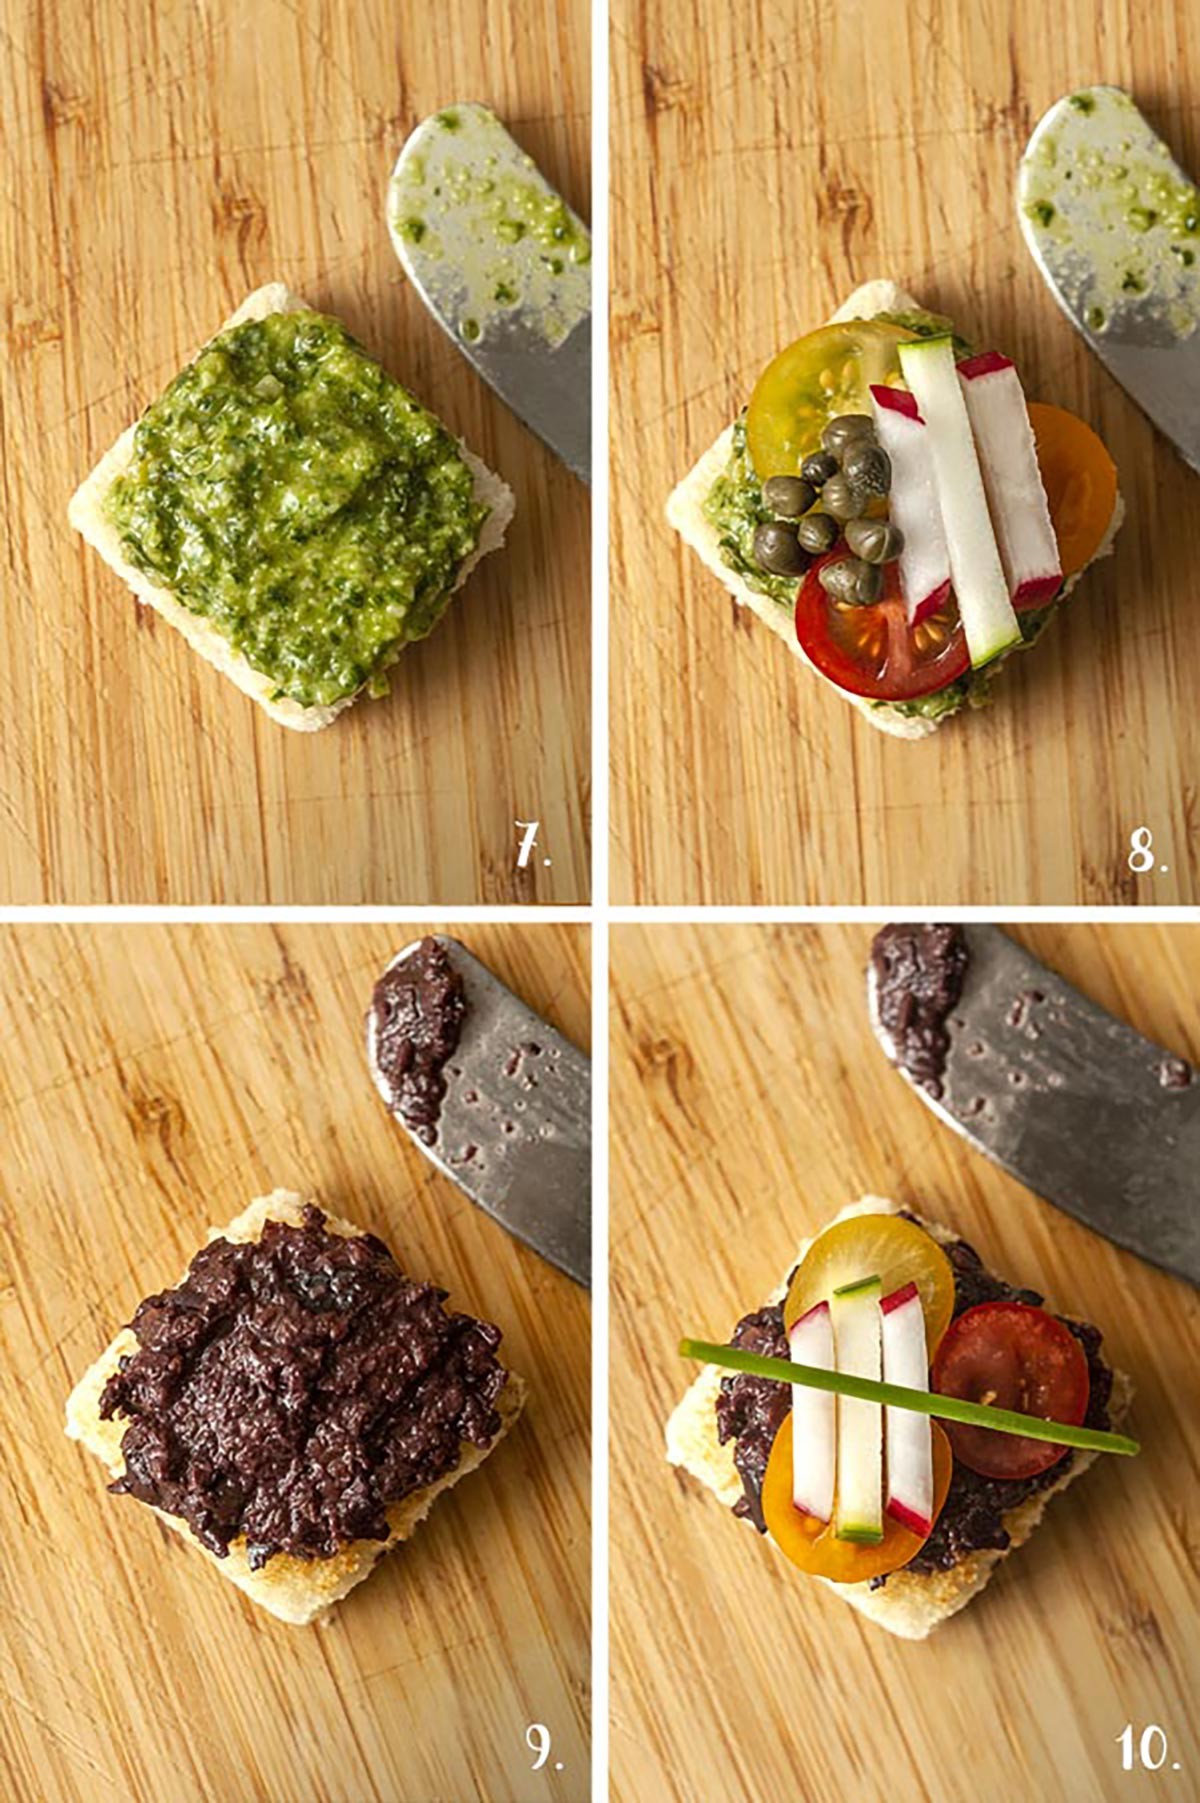 A collage of 4 numbered images showing how to make canapés with small, chopped vegetables.